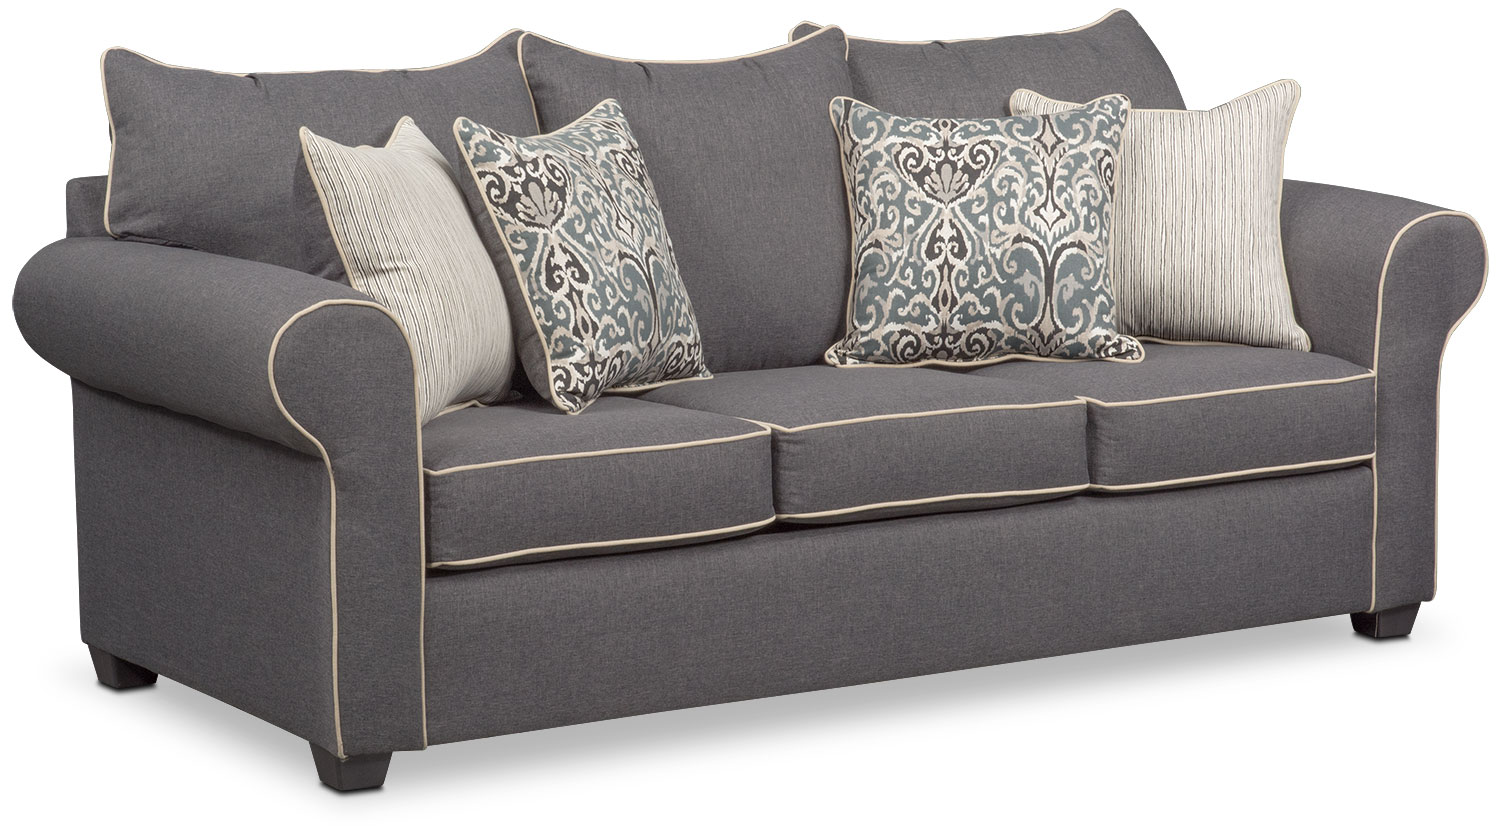 Carla Queen Memory Foam Sleeper Sofa - Gray